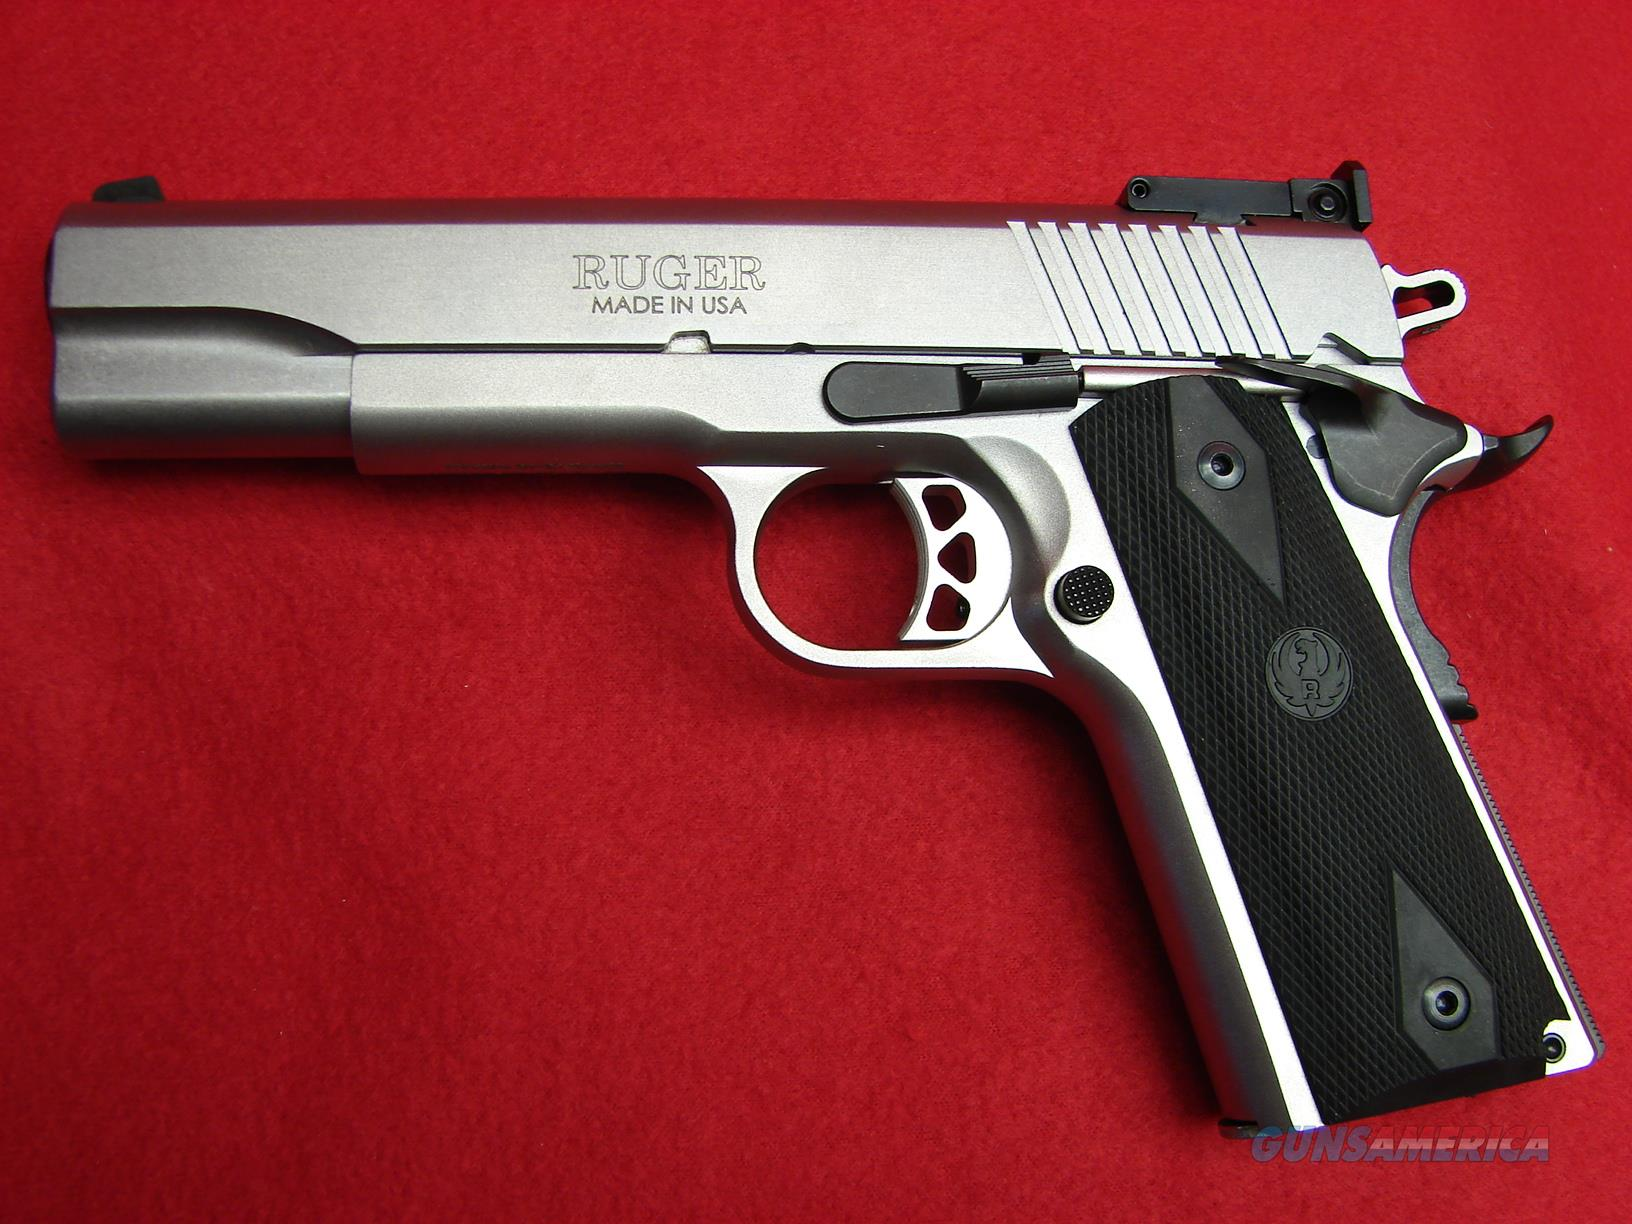 Ruger SR1911 - 10mm - Stainless Steel - NIB   Guns > Pistols > Ruger Semi-Auto Pistols > 1911